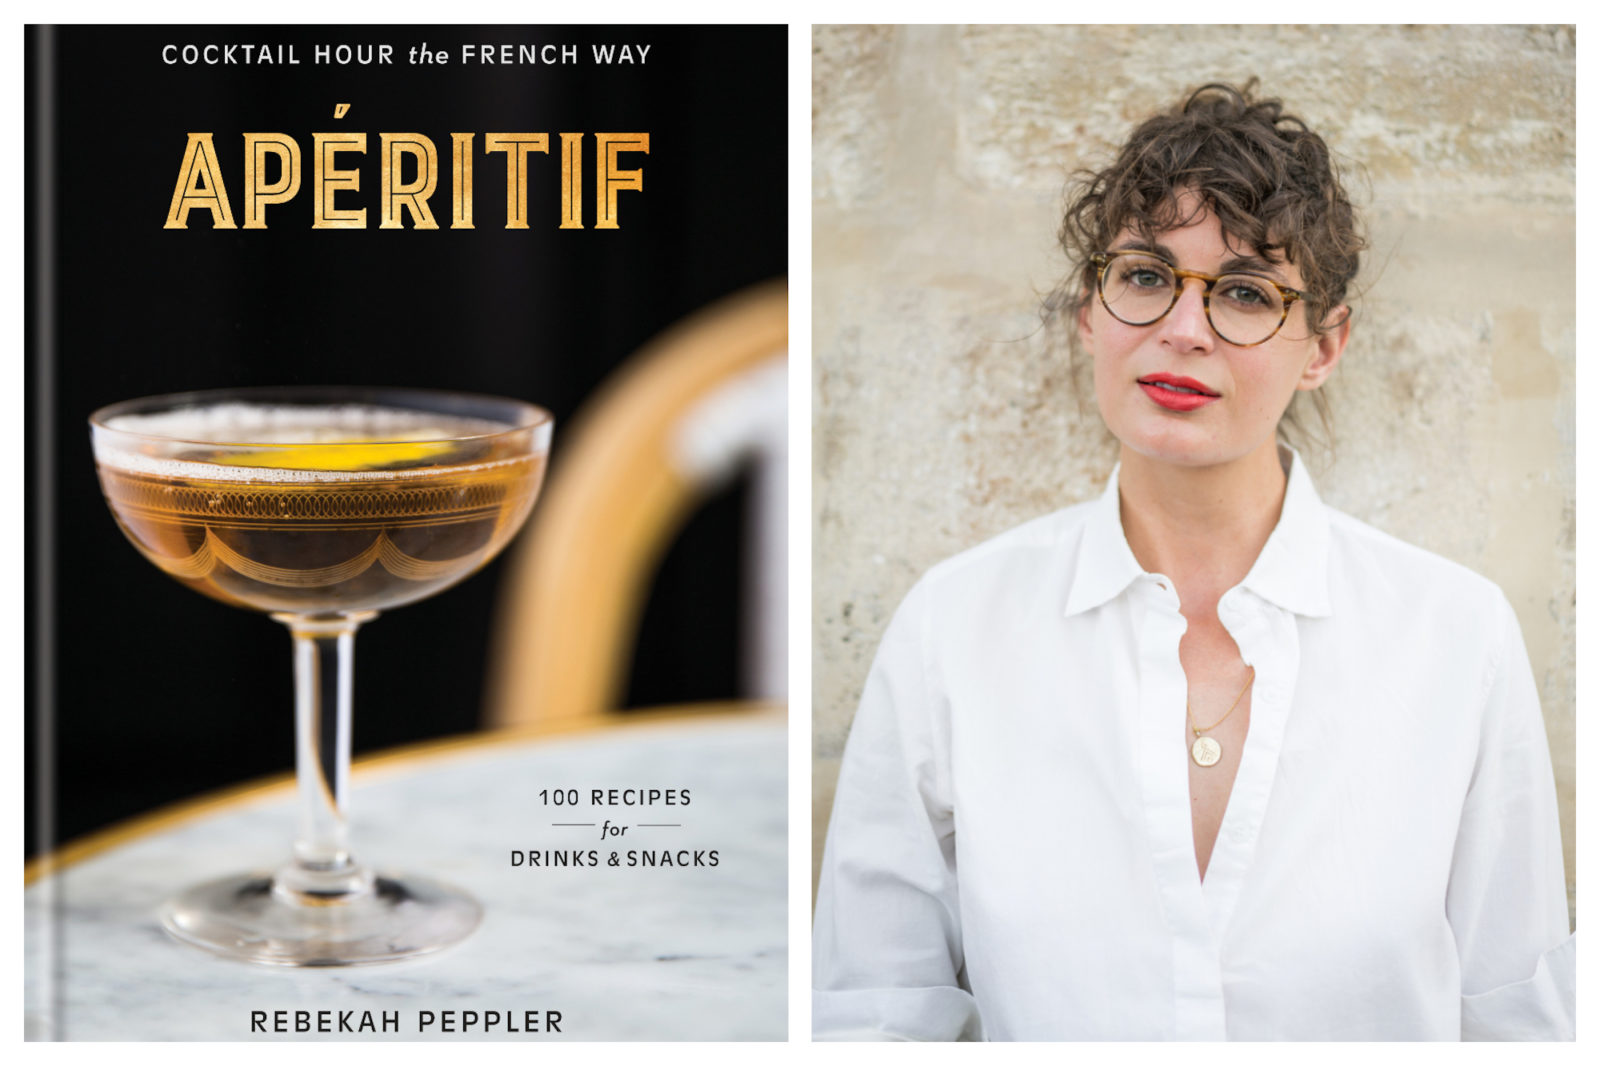 How to make cocktails the French way in author Rebekah Peppler's 'Aperitif' Book